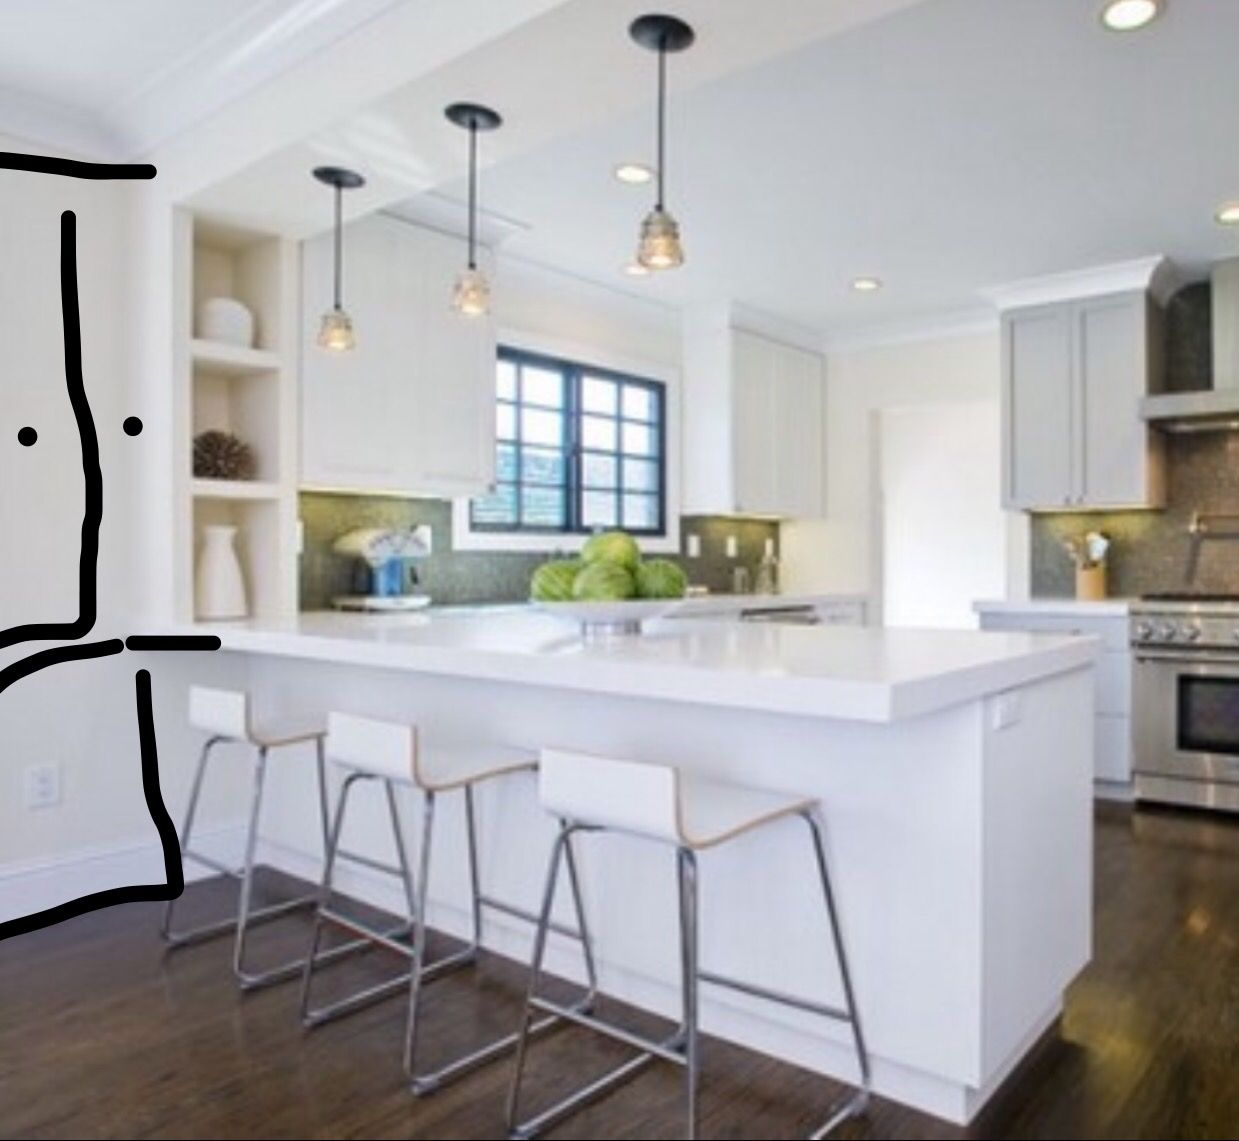 New kitchen layout inspiration With images   Kitchen ...